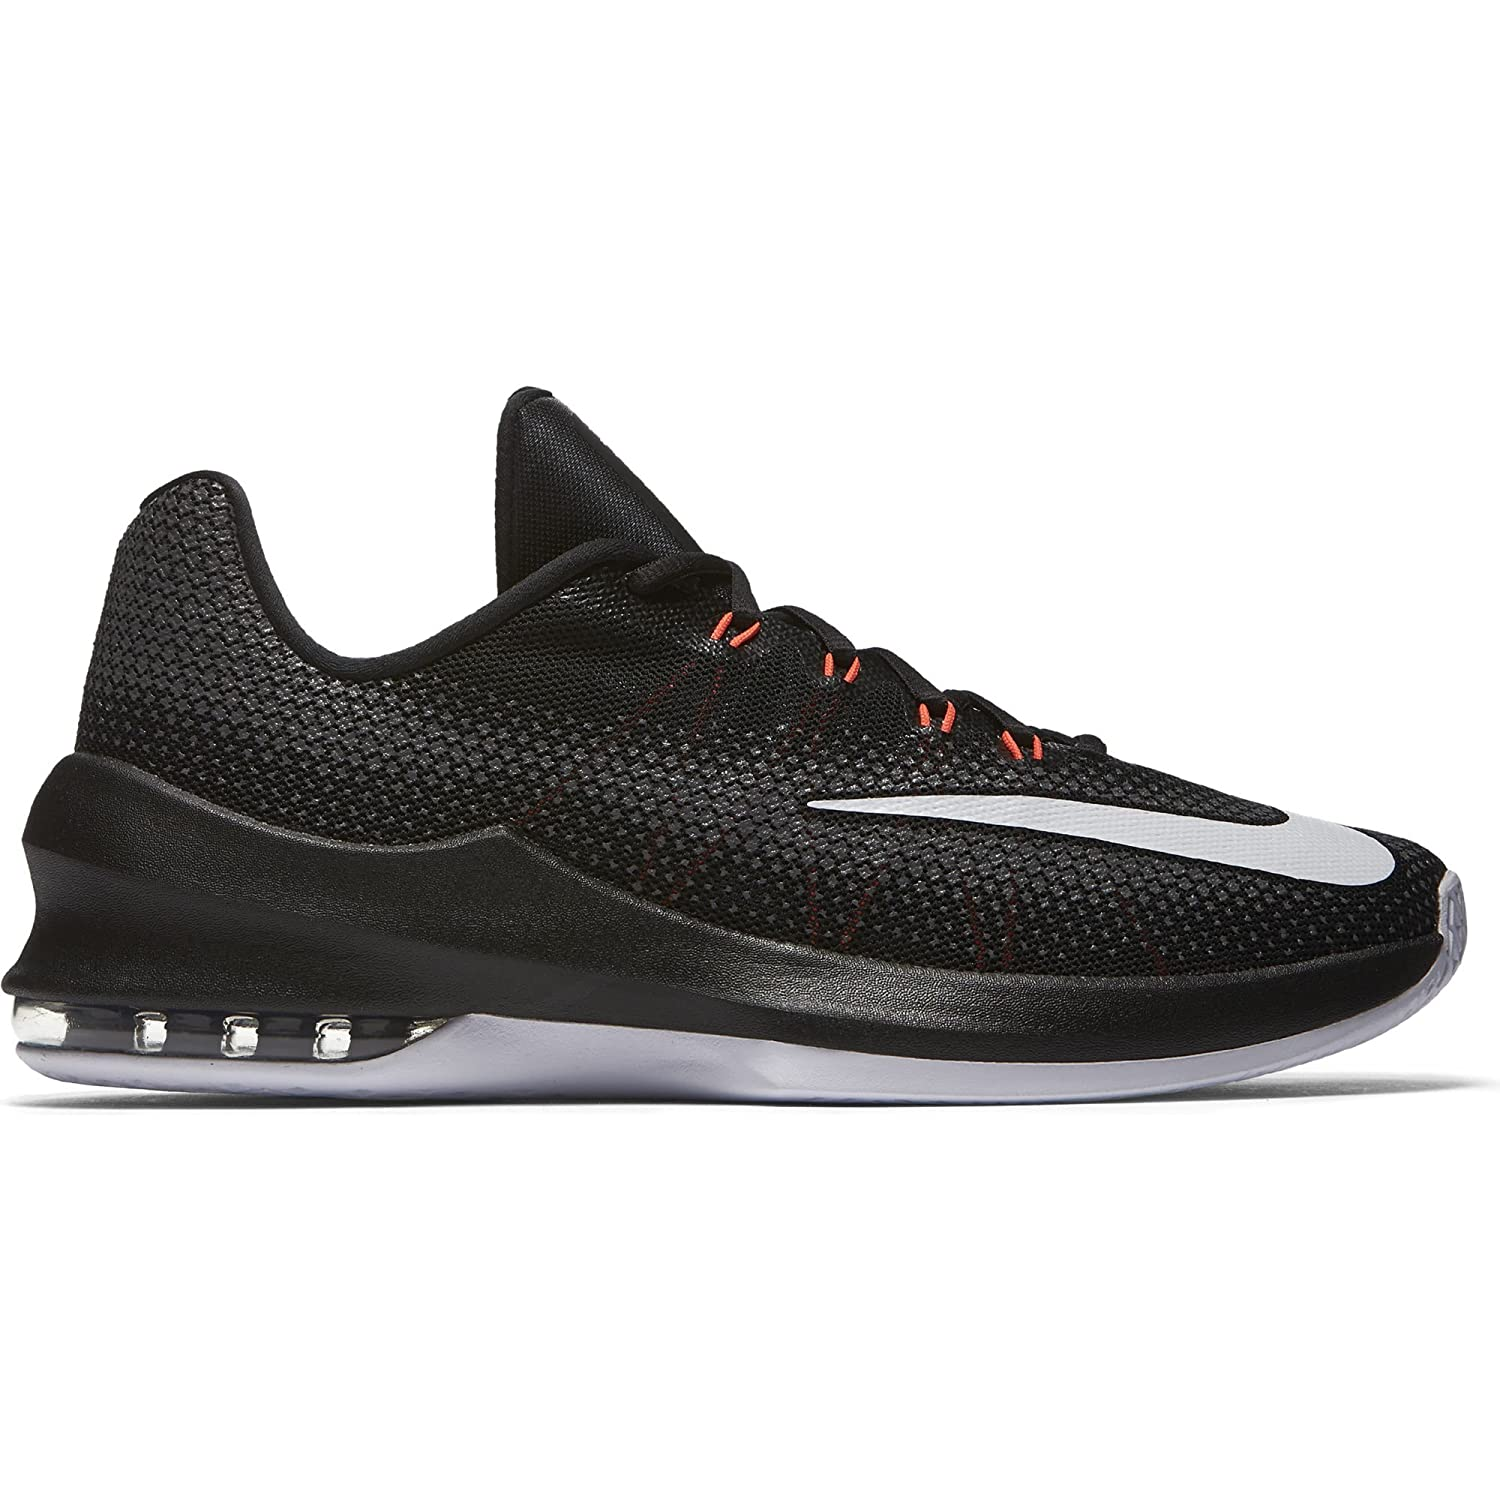 9d5f106880e Nike Men s Air Max Infuriate Low Basketball Shoe Black White Dark Grey Total  Crimson Size 10.5 M US  Buy Online at Low Prices in India - Amazon.in